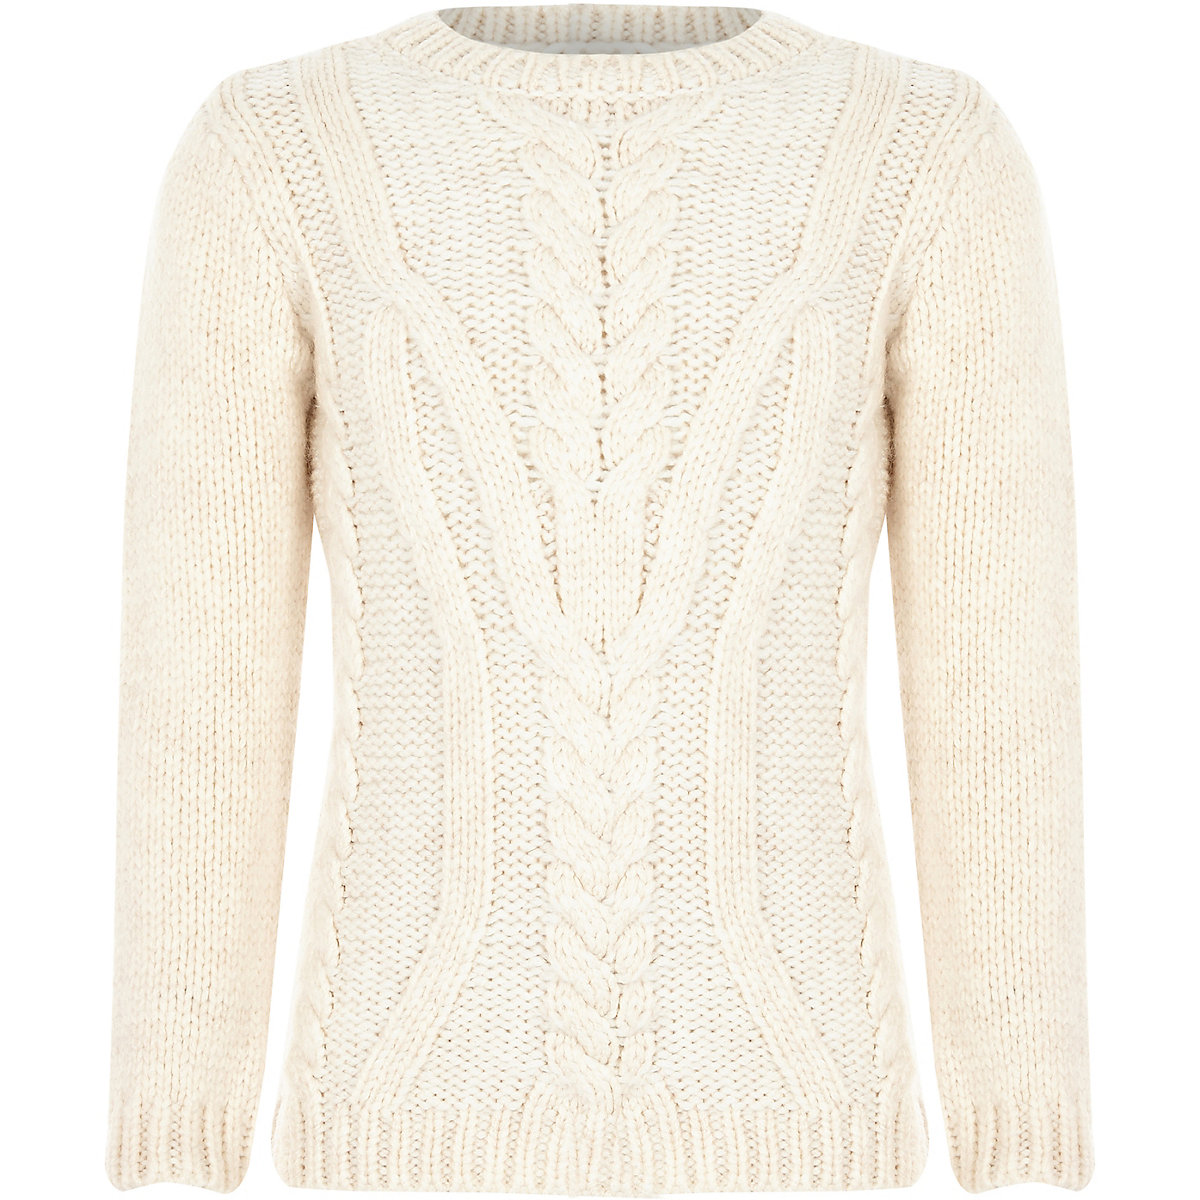 Boys ecru chunky cable knit sweater